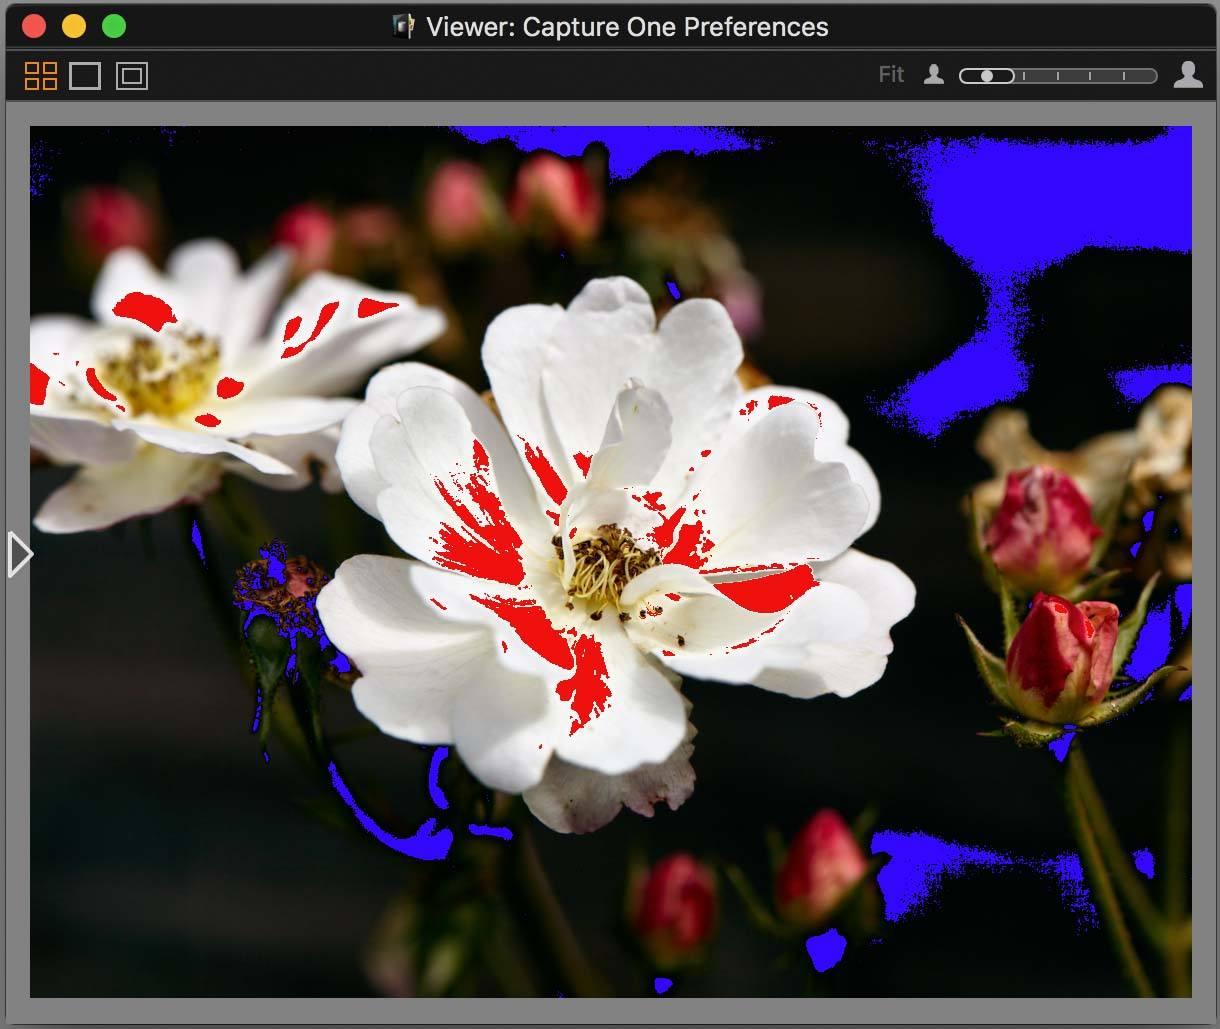 capture one pro 10, viewer, with exposure warning